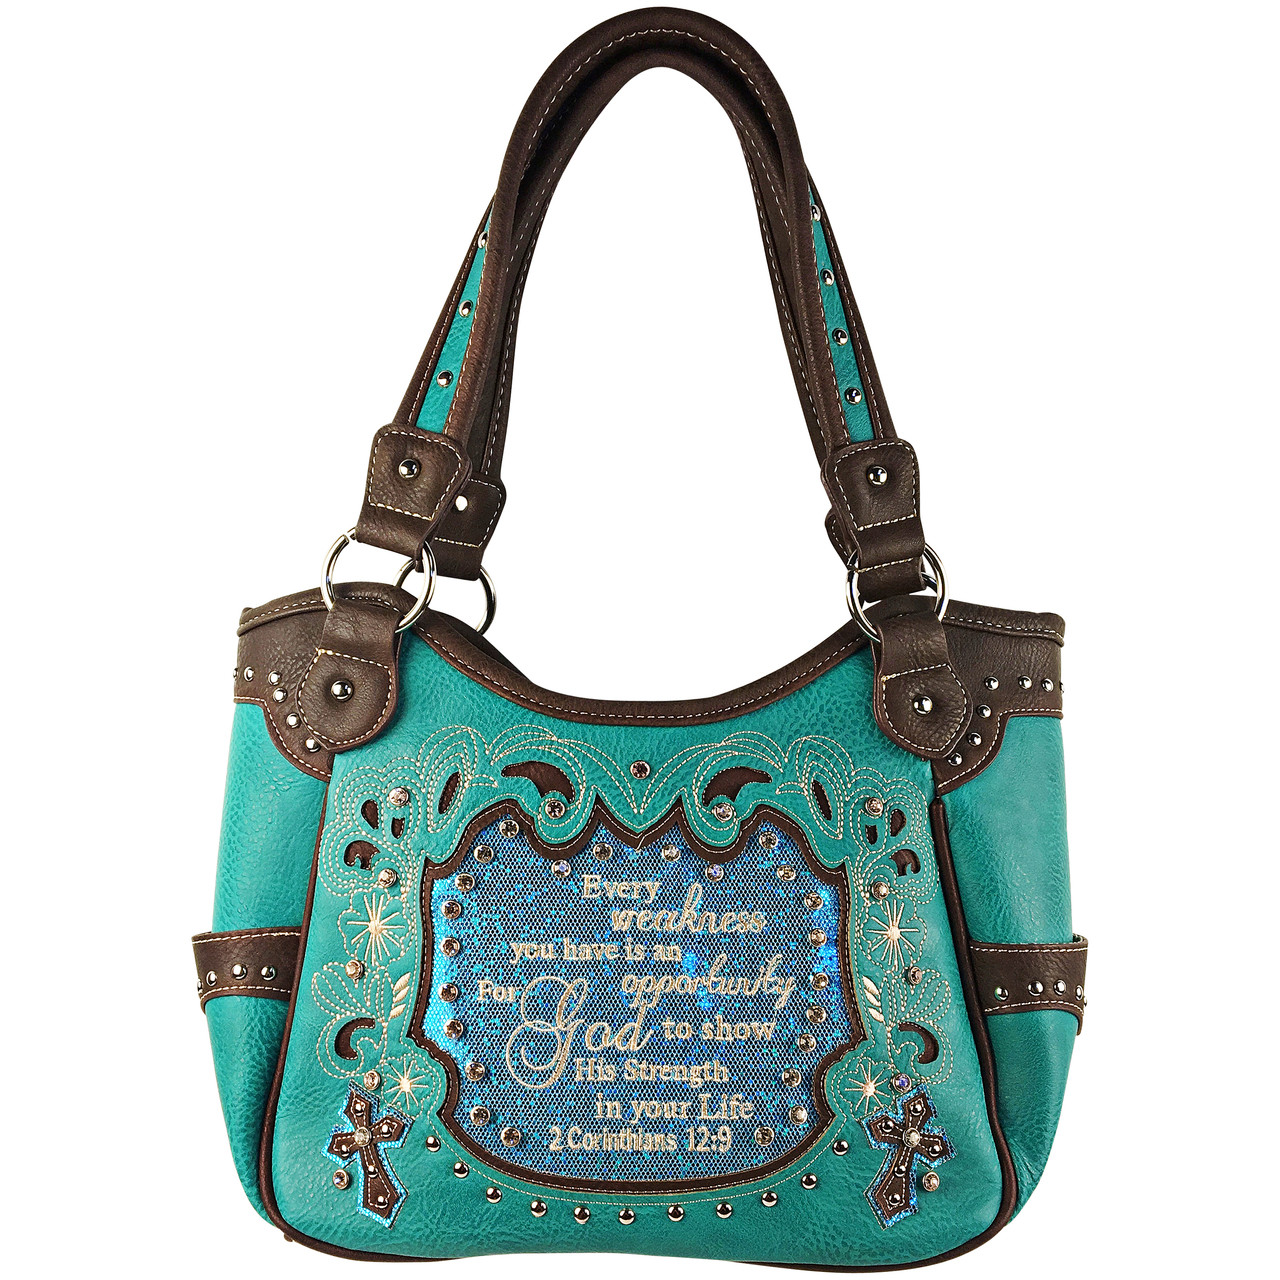 TURQUOISE BIBLE LIFE QUOTE RHINESTONE STUDDED LOOK SHOULDER HANDBAG